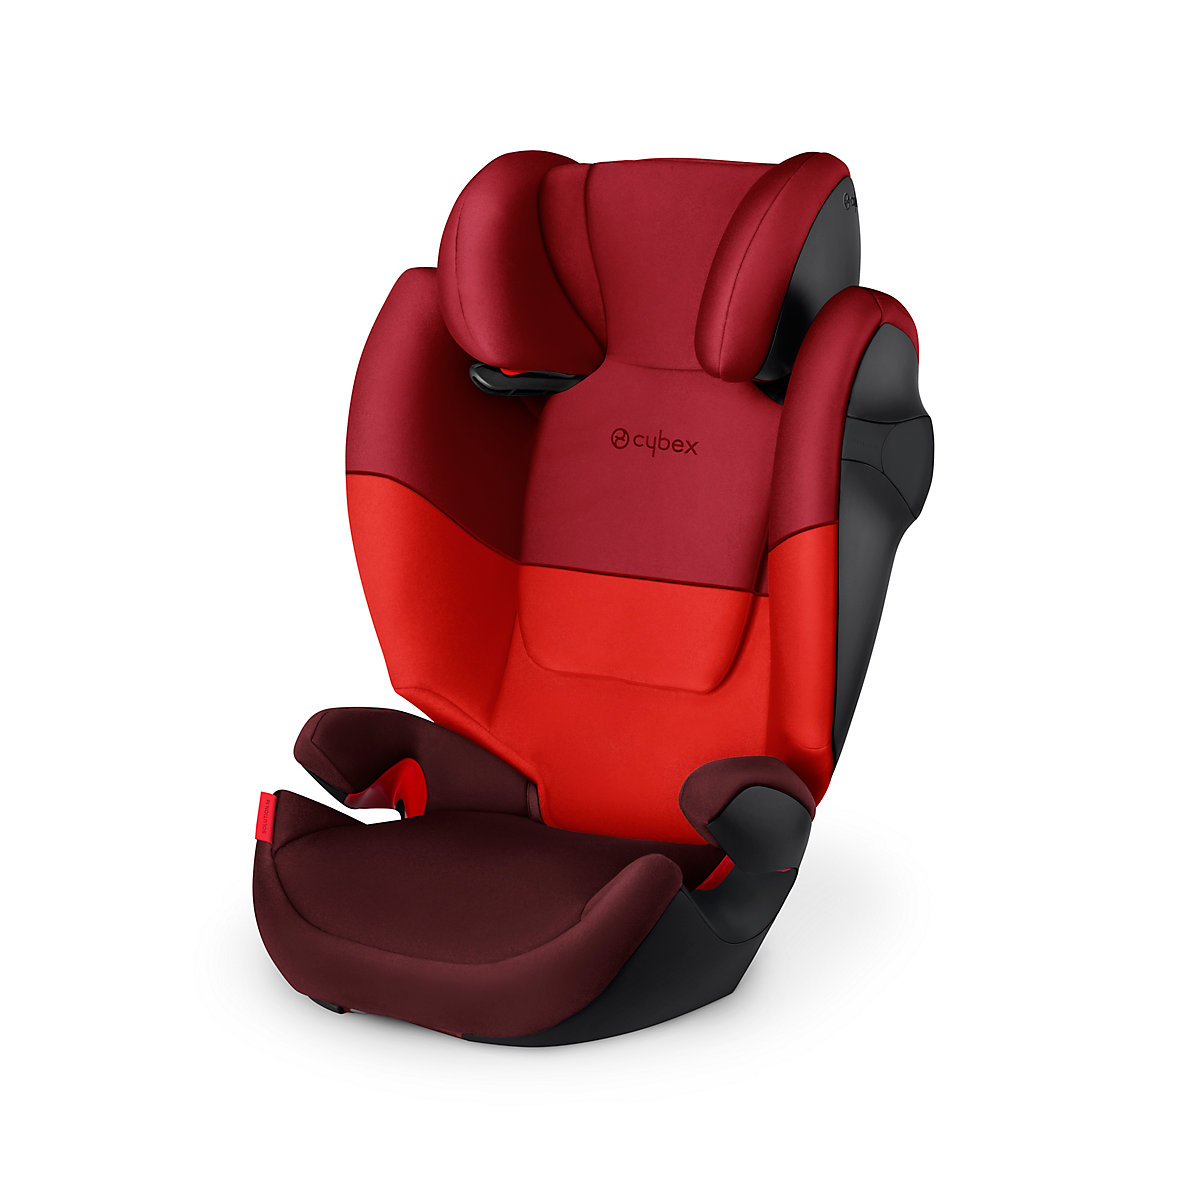 Cybex solution m group 2/3 highback booster car seat- rumba red